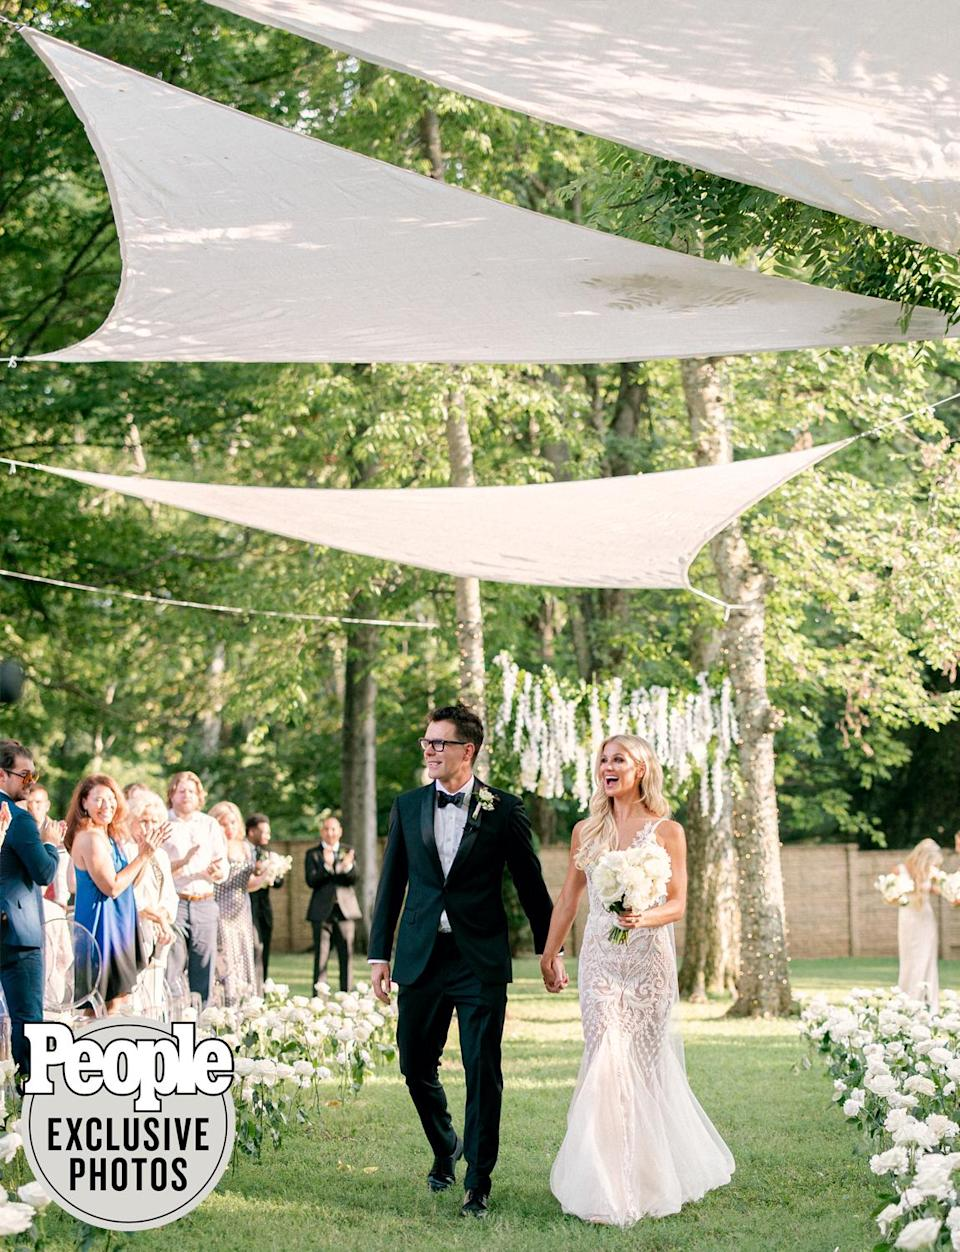 """<p>Following their wedding ceremony between two trees, the newlyweds walked back down the floral-lined aisle covered by sunshades that planner Josiah Carr developed with <a href=""""https://www.tneventdesigns.com/"""" rel=""""nofollow noopener"""" target=""""_blank"""" data-ylk=""""slk:TN Event Designs"""" class=""""link rapid-noclick-resp"""">TN Event Designs</a>.</p>"""